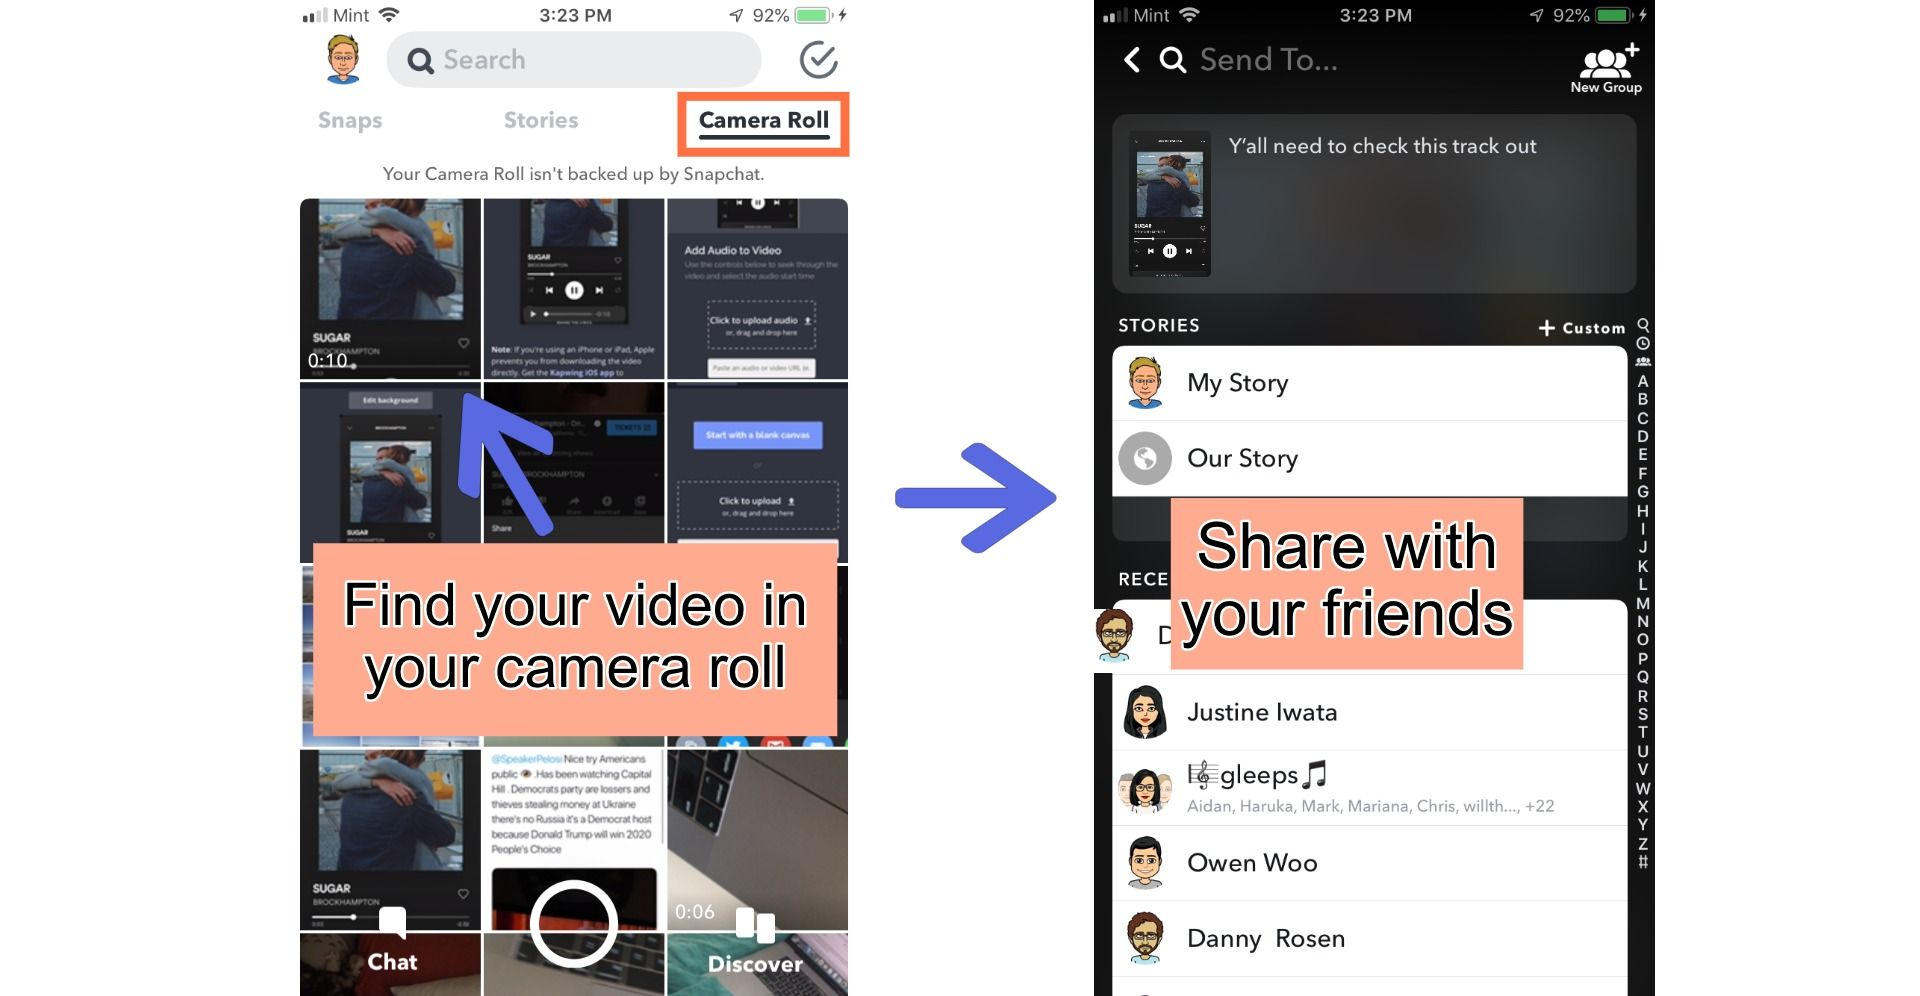 Screenshots showing how to share videos on Snapchat.